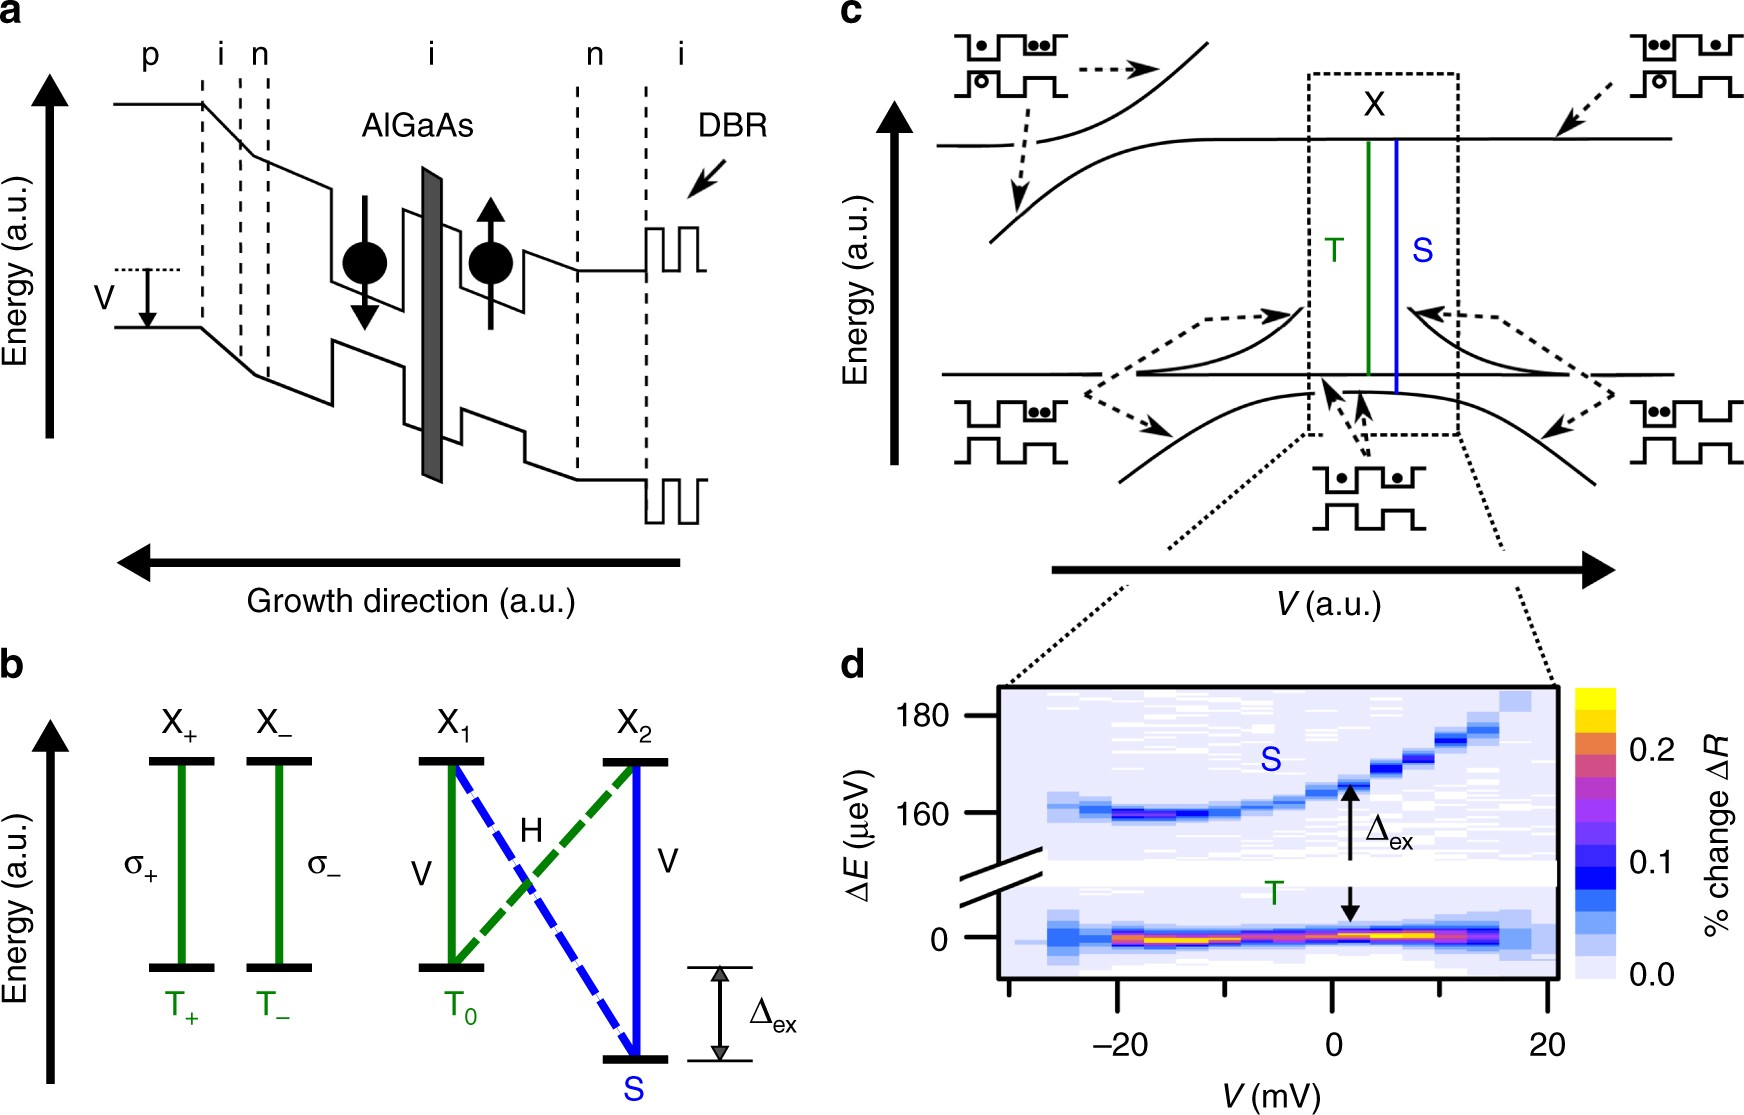 Picosecond Pulse Shaping Of Single Photons Using Quantum Dots Arbitrarydutycycle Squarewave Oscillator Circuit Diagram Nature Communications